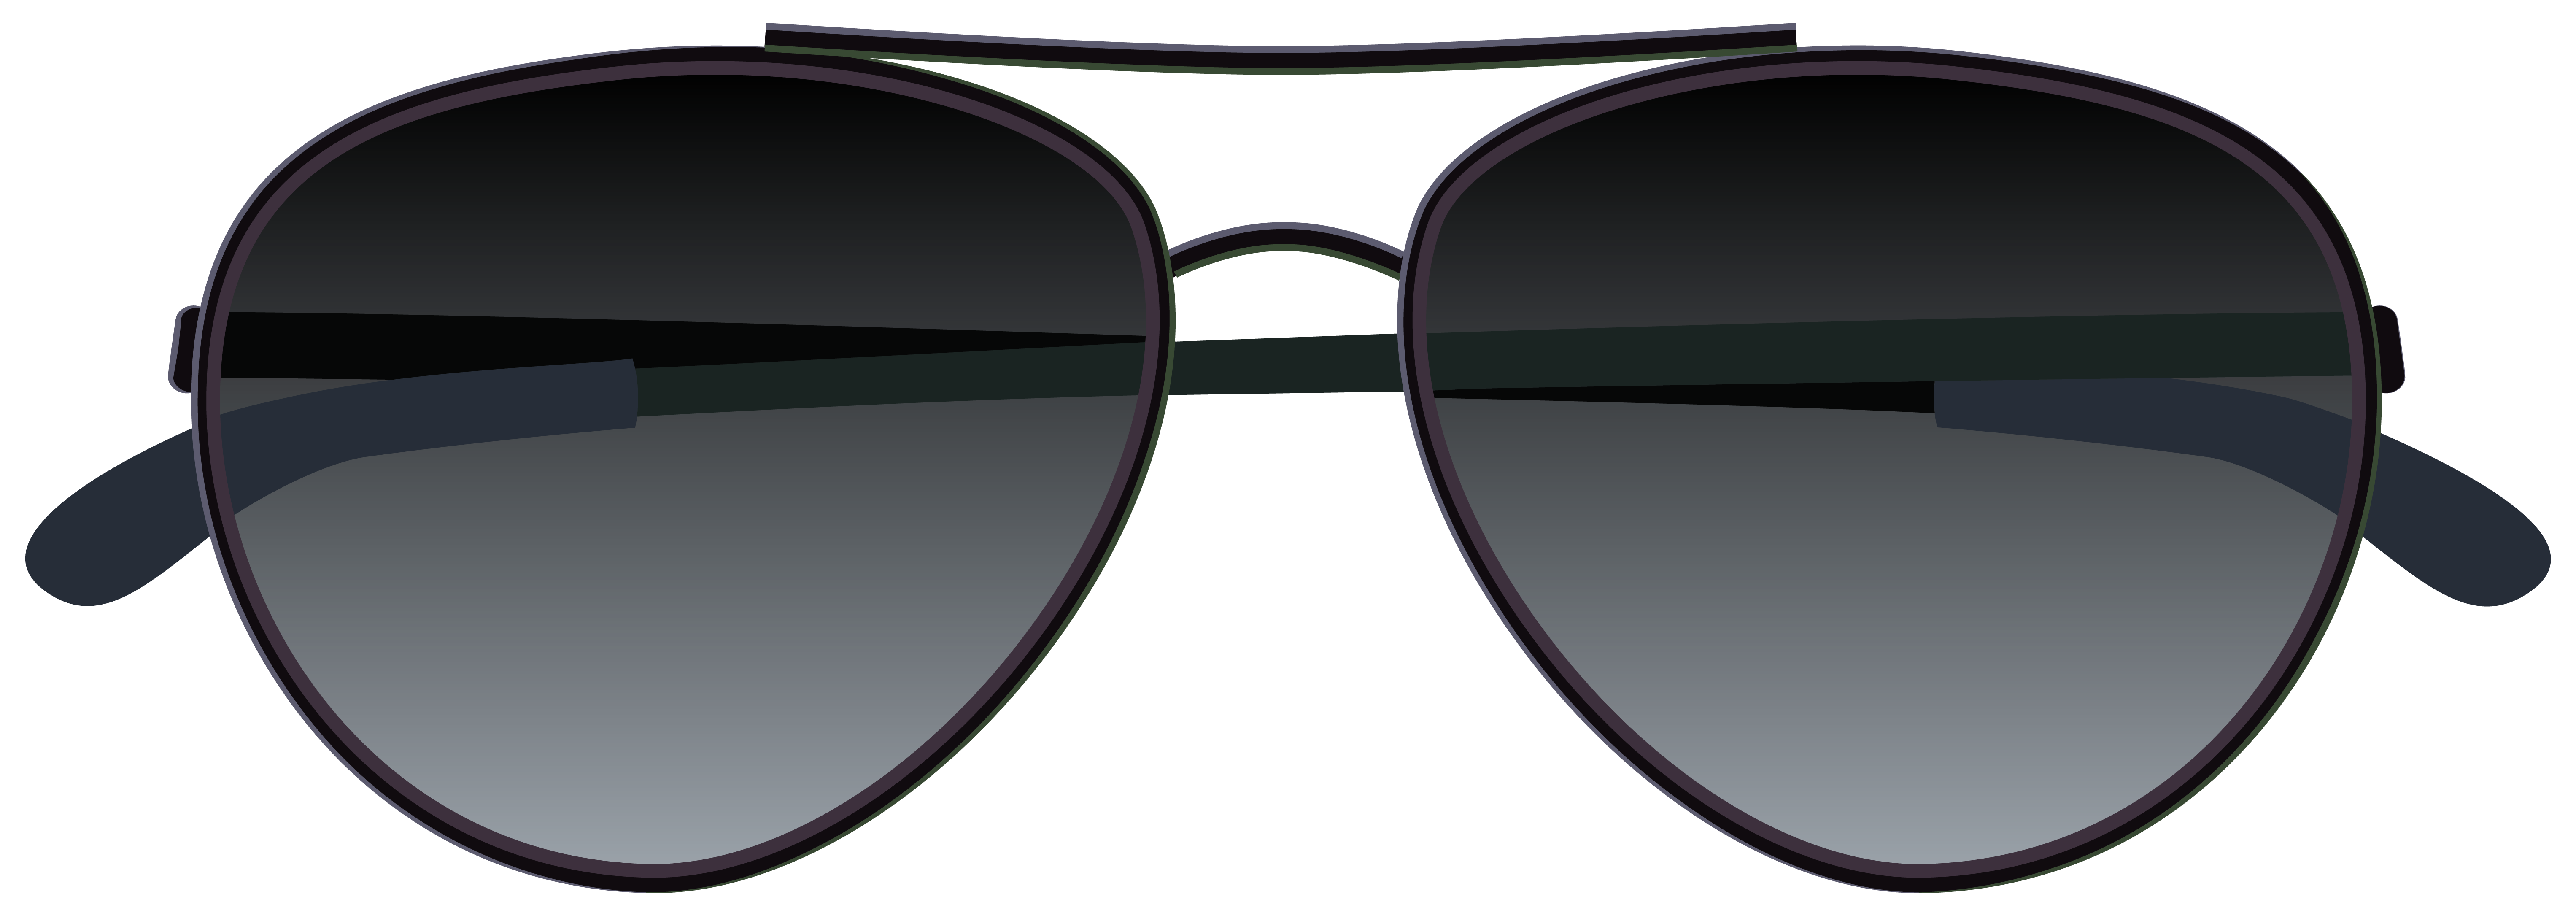 Sunglasses clipart. Png picture gallery yopriceville